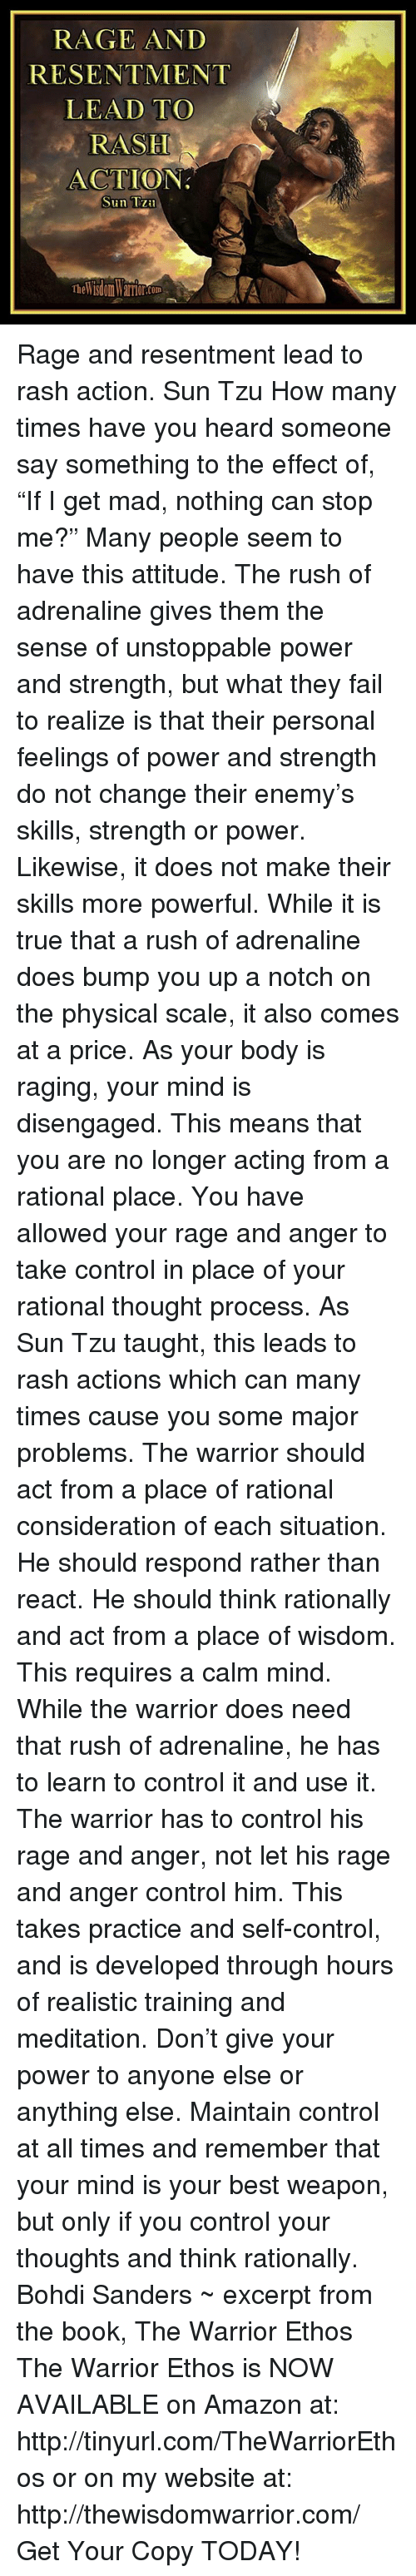 RAGE AND RESENTMENT LEAD TO RASH ACTION Sun Tzu Rage and ...